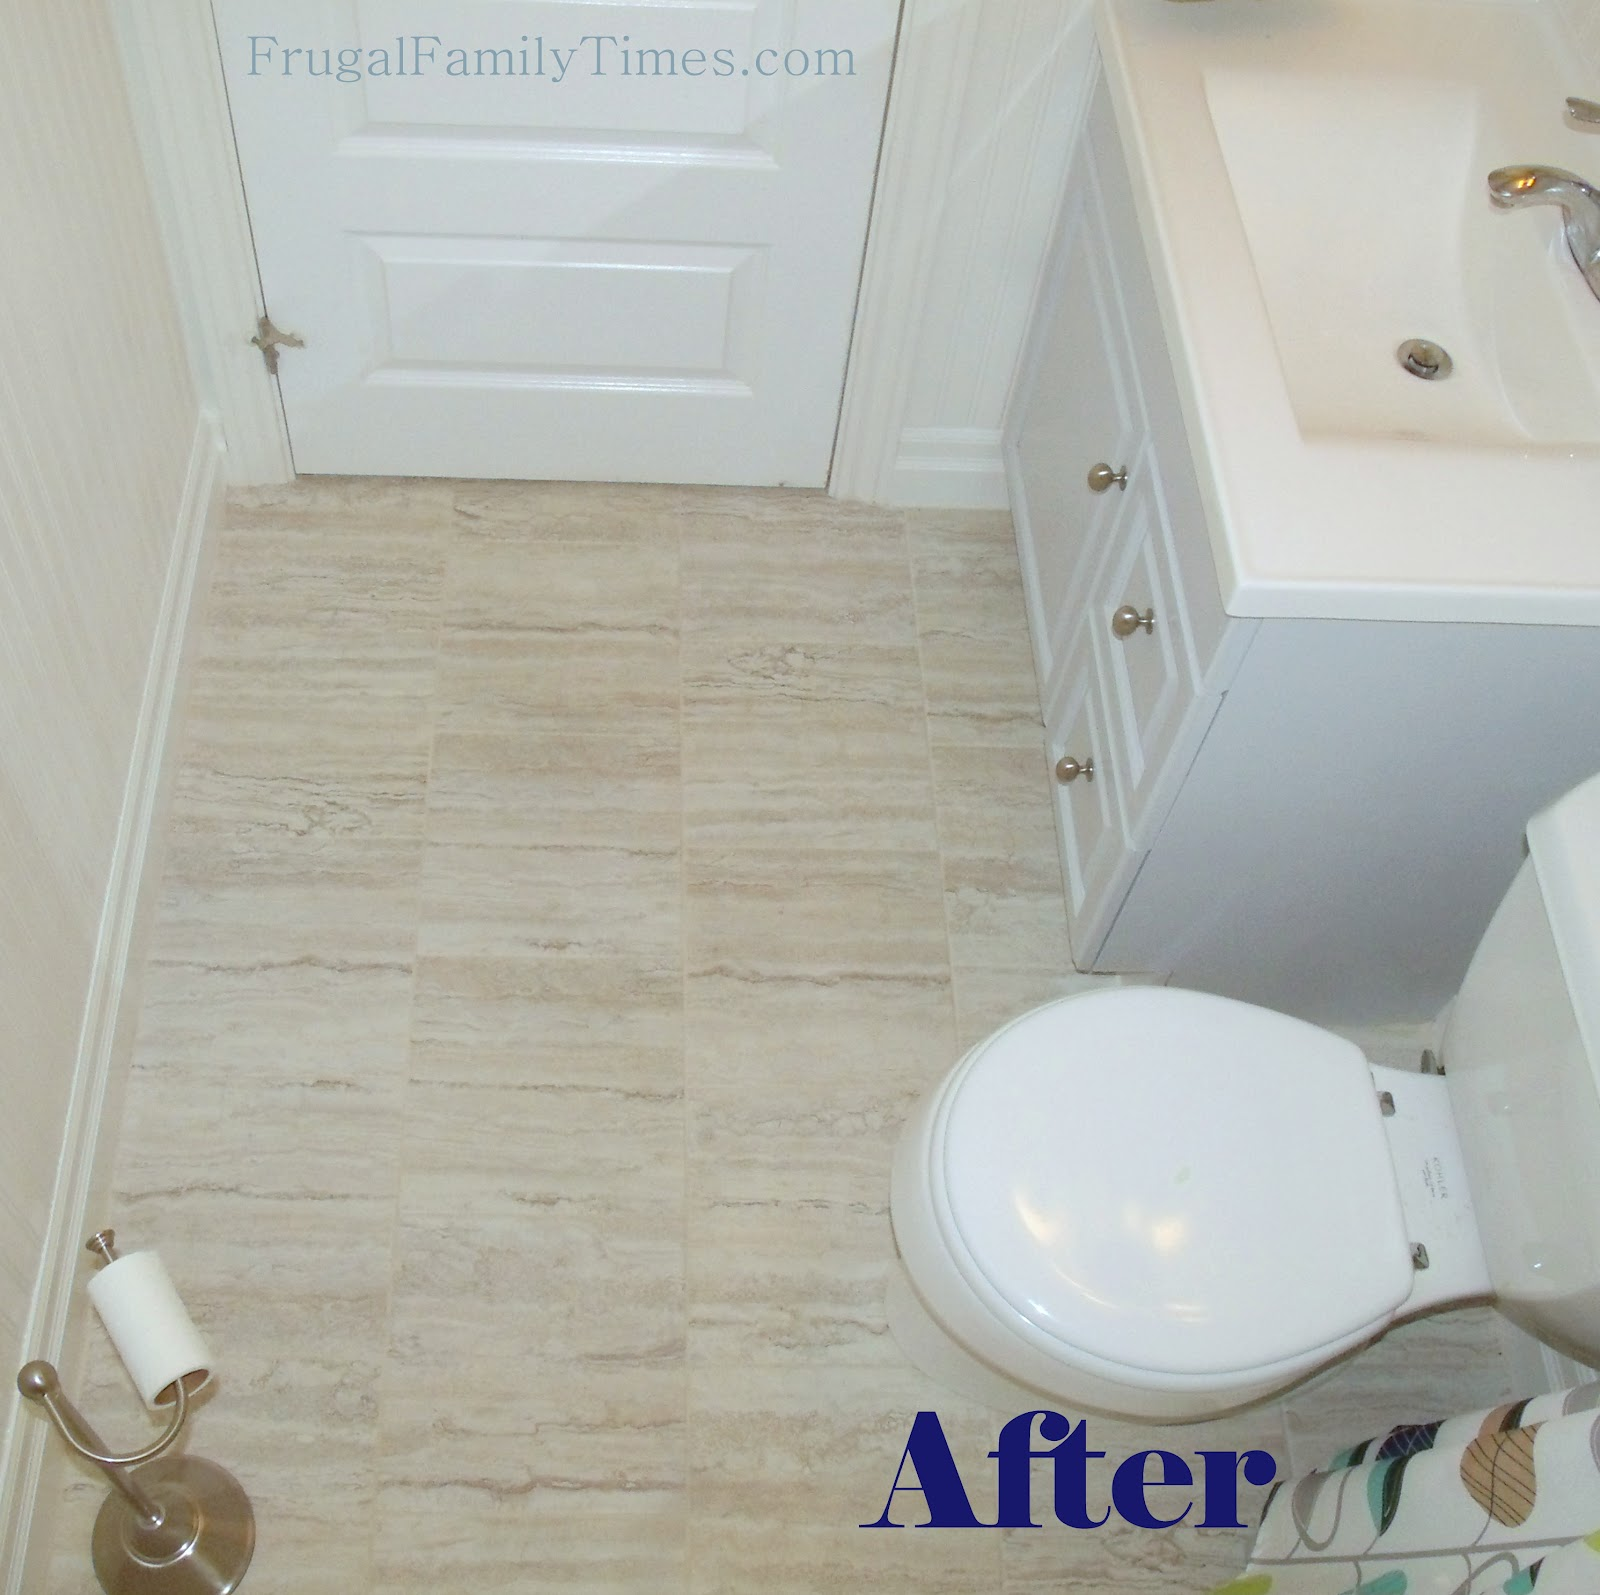 Sticky Tiles For Kitchen Floor How To Install Peel And Stick Vinyl Tile That You Can Grout